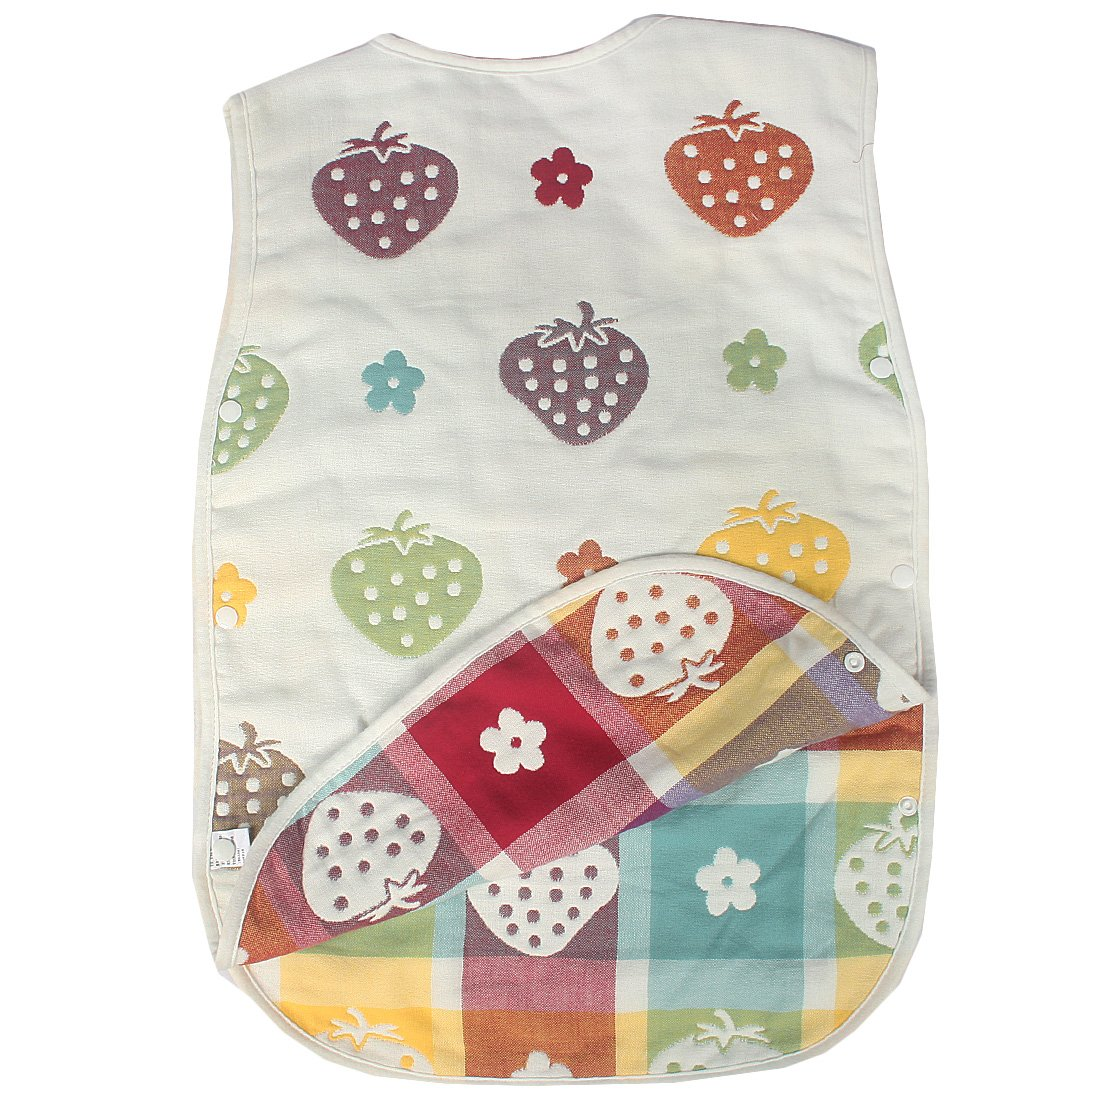 Amazon.com: KF Baby Muslin Sleep Bag Wearable Blanket, Set of 2 [Small]: Baby